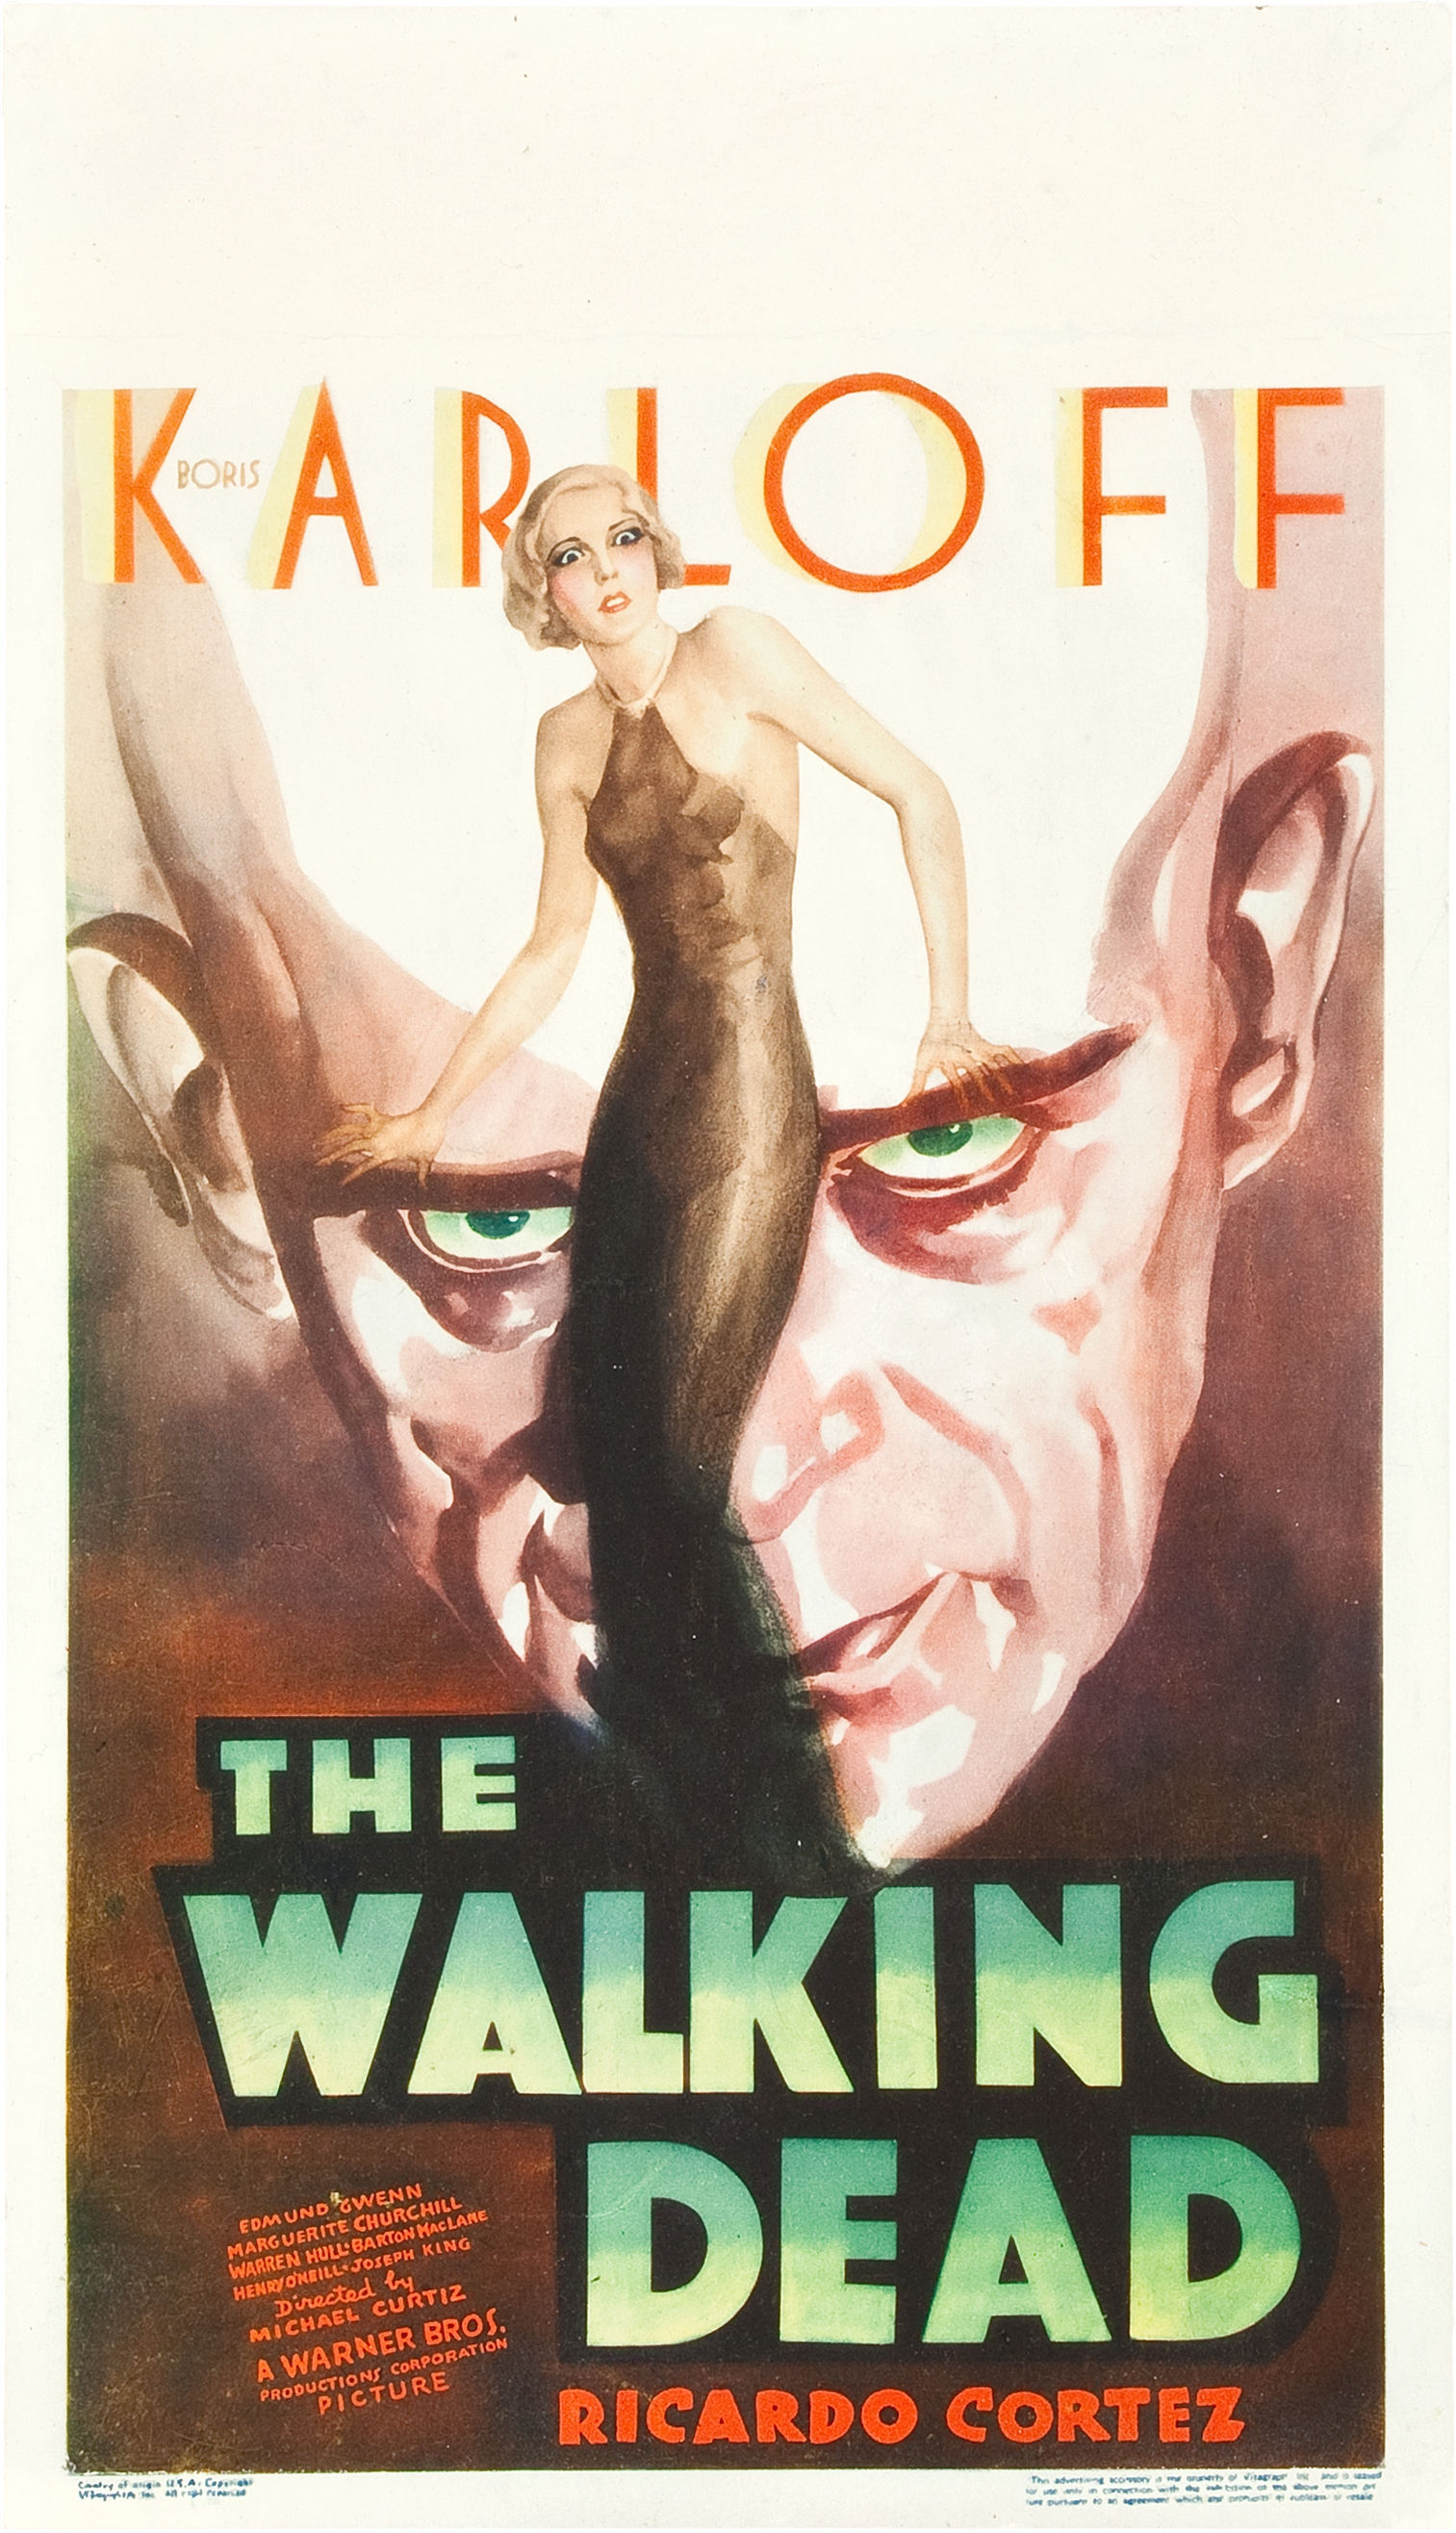 17-1936-the-walking-dead-poster